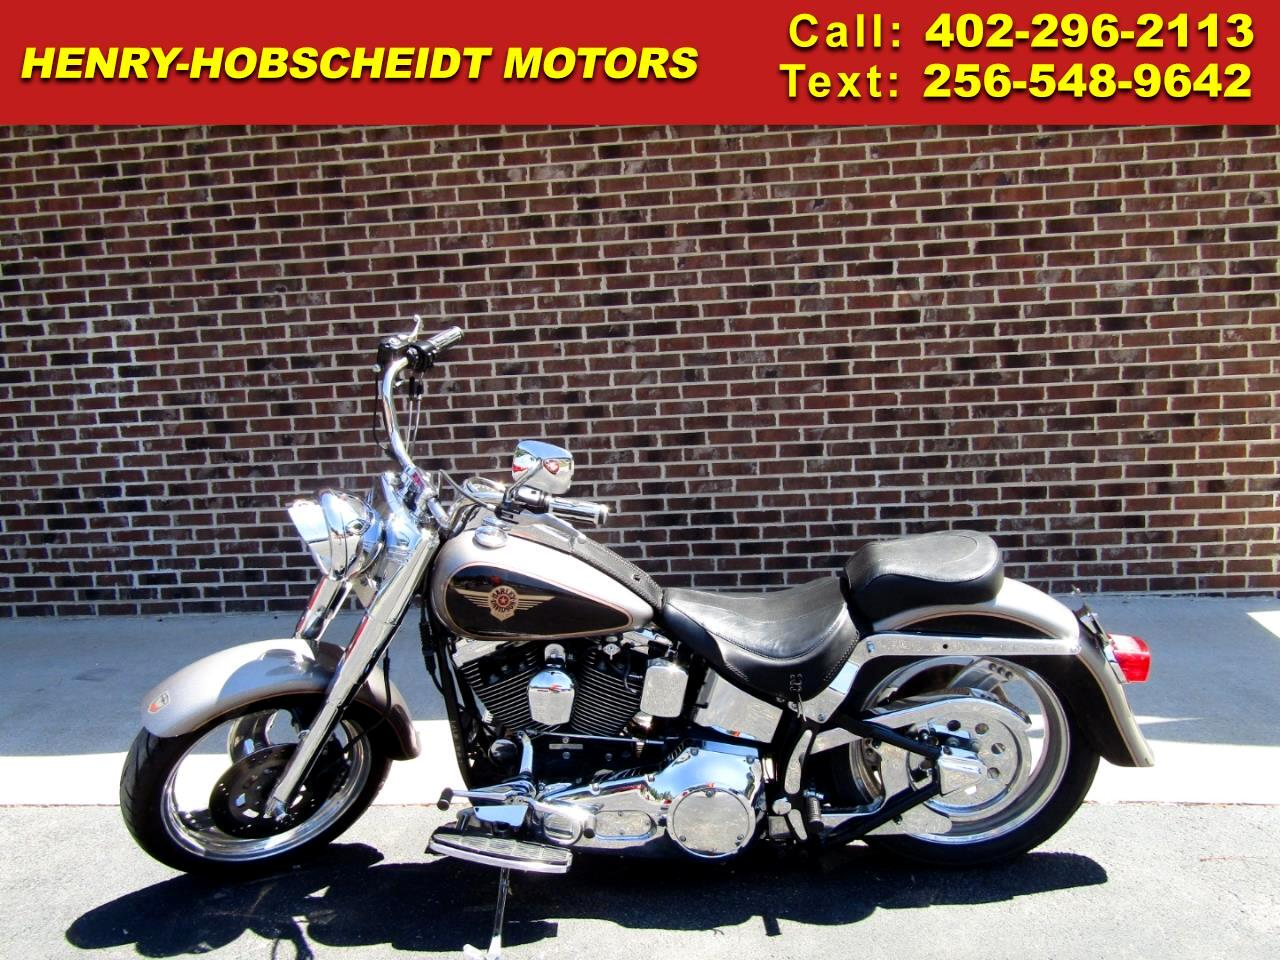 1997 Harley-Davidson Softail Fat Boy